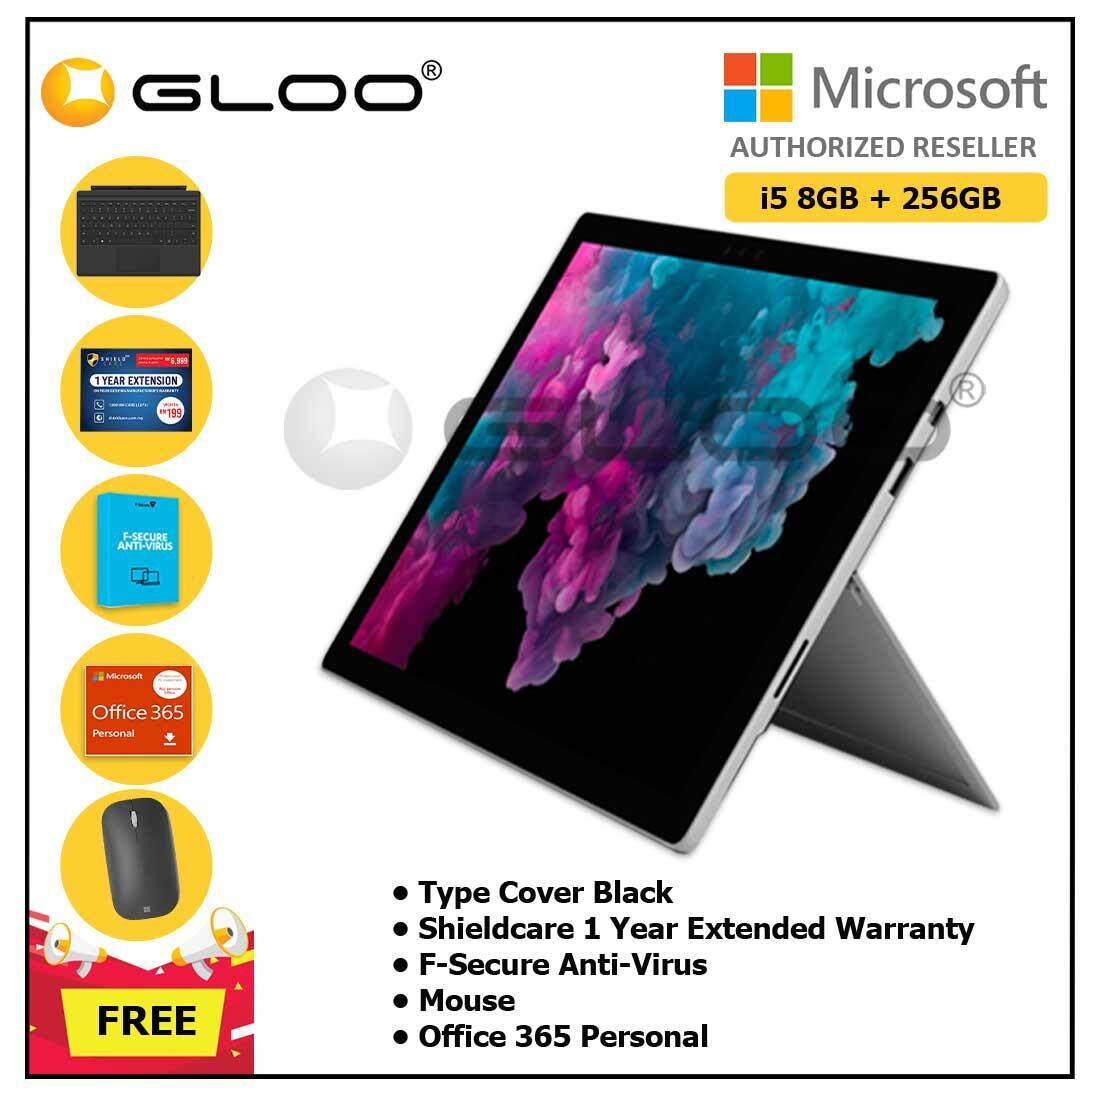 Microsoft Surface Pro 6 Core i5/8GB RAM - 256GB + Type Cover Black + Office 365 Personal (ESD) + Shieldcare 1 Year Extended Warranty + F-Secure EndPoint Protection + Mouse